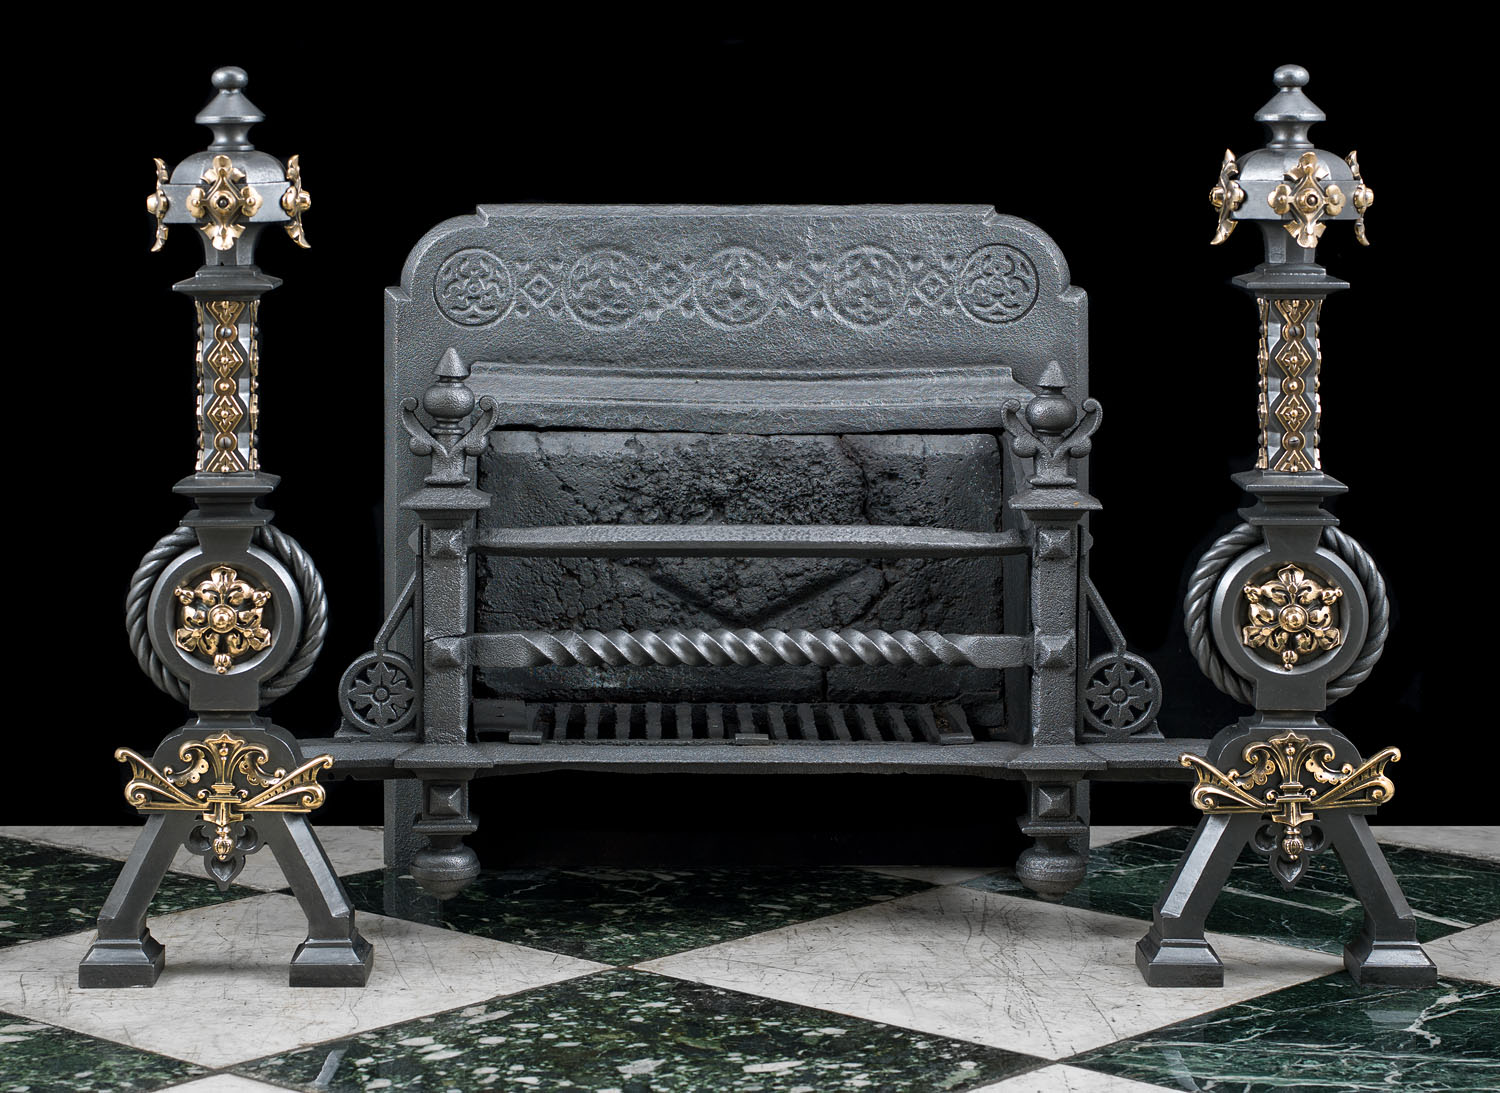 A large Gothic Revival cast iron and parcel gilt antique firegrate